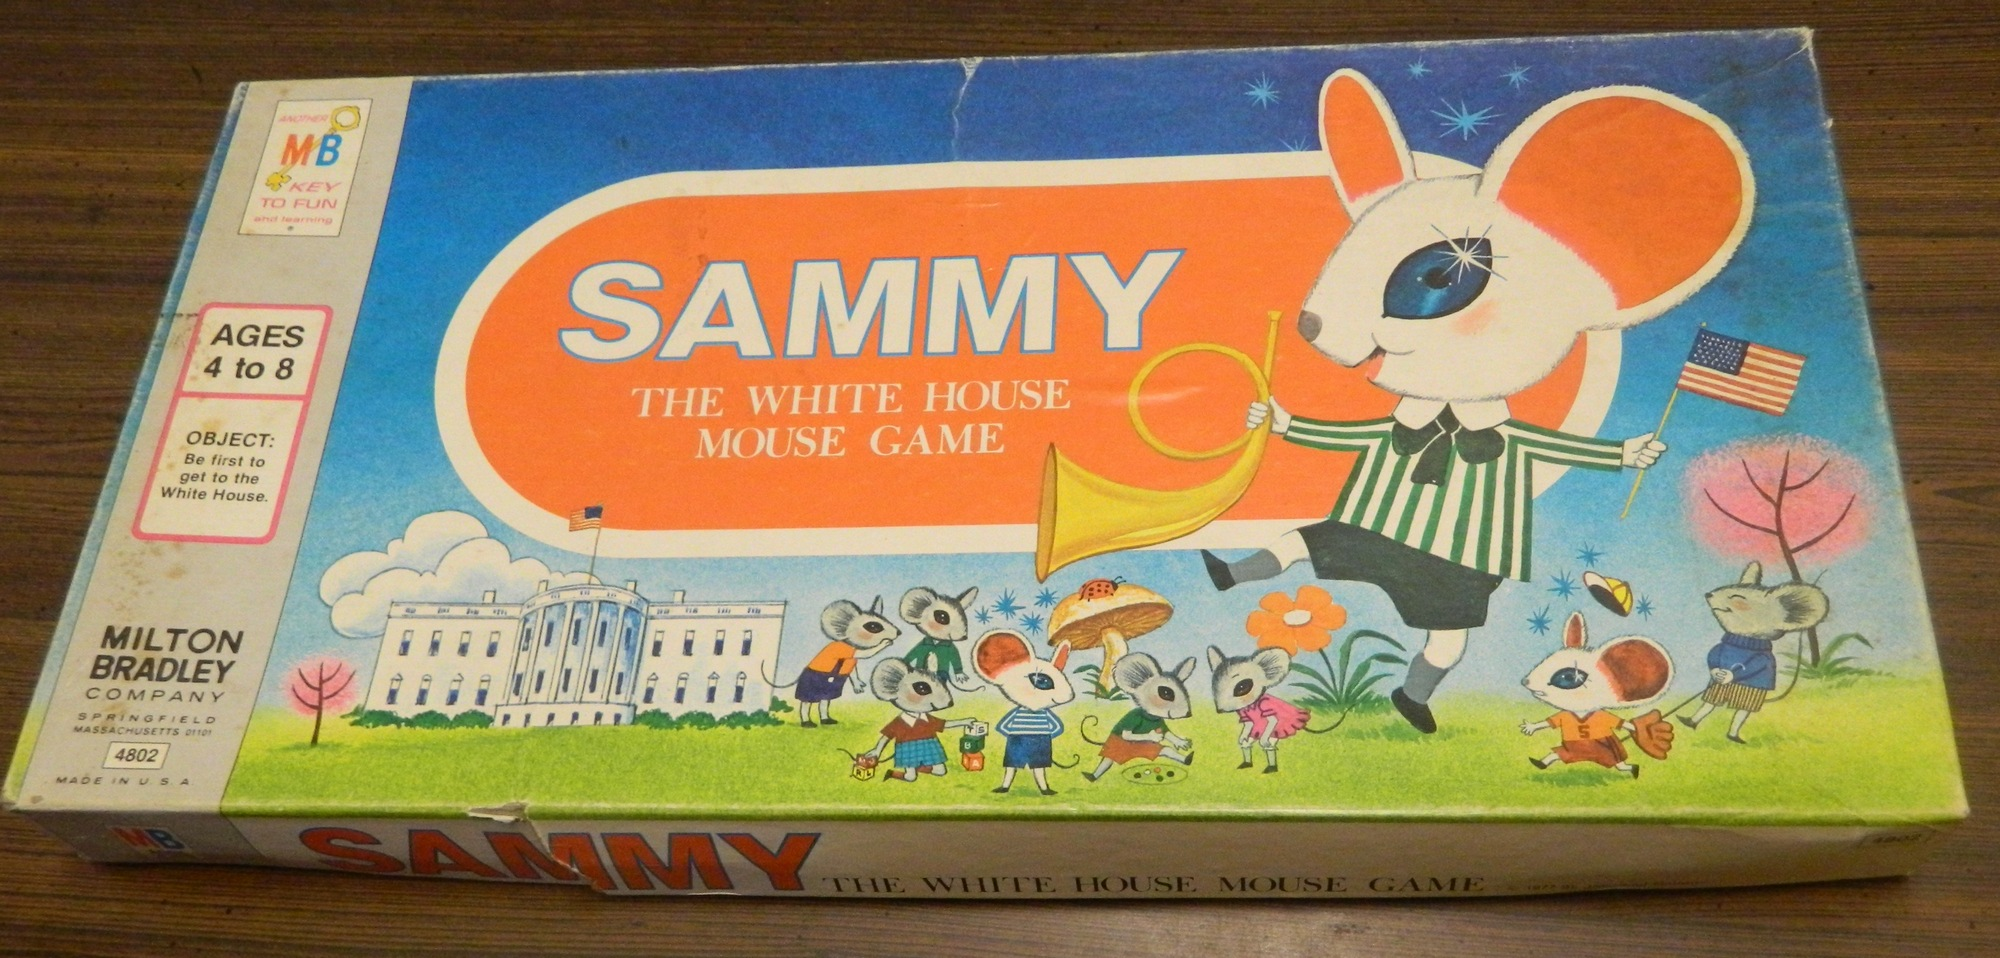 Sammy The White House Mouse